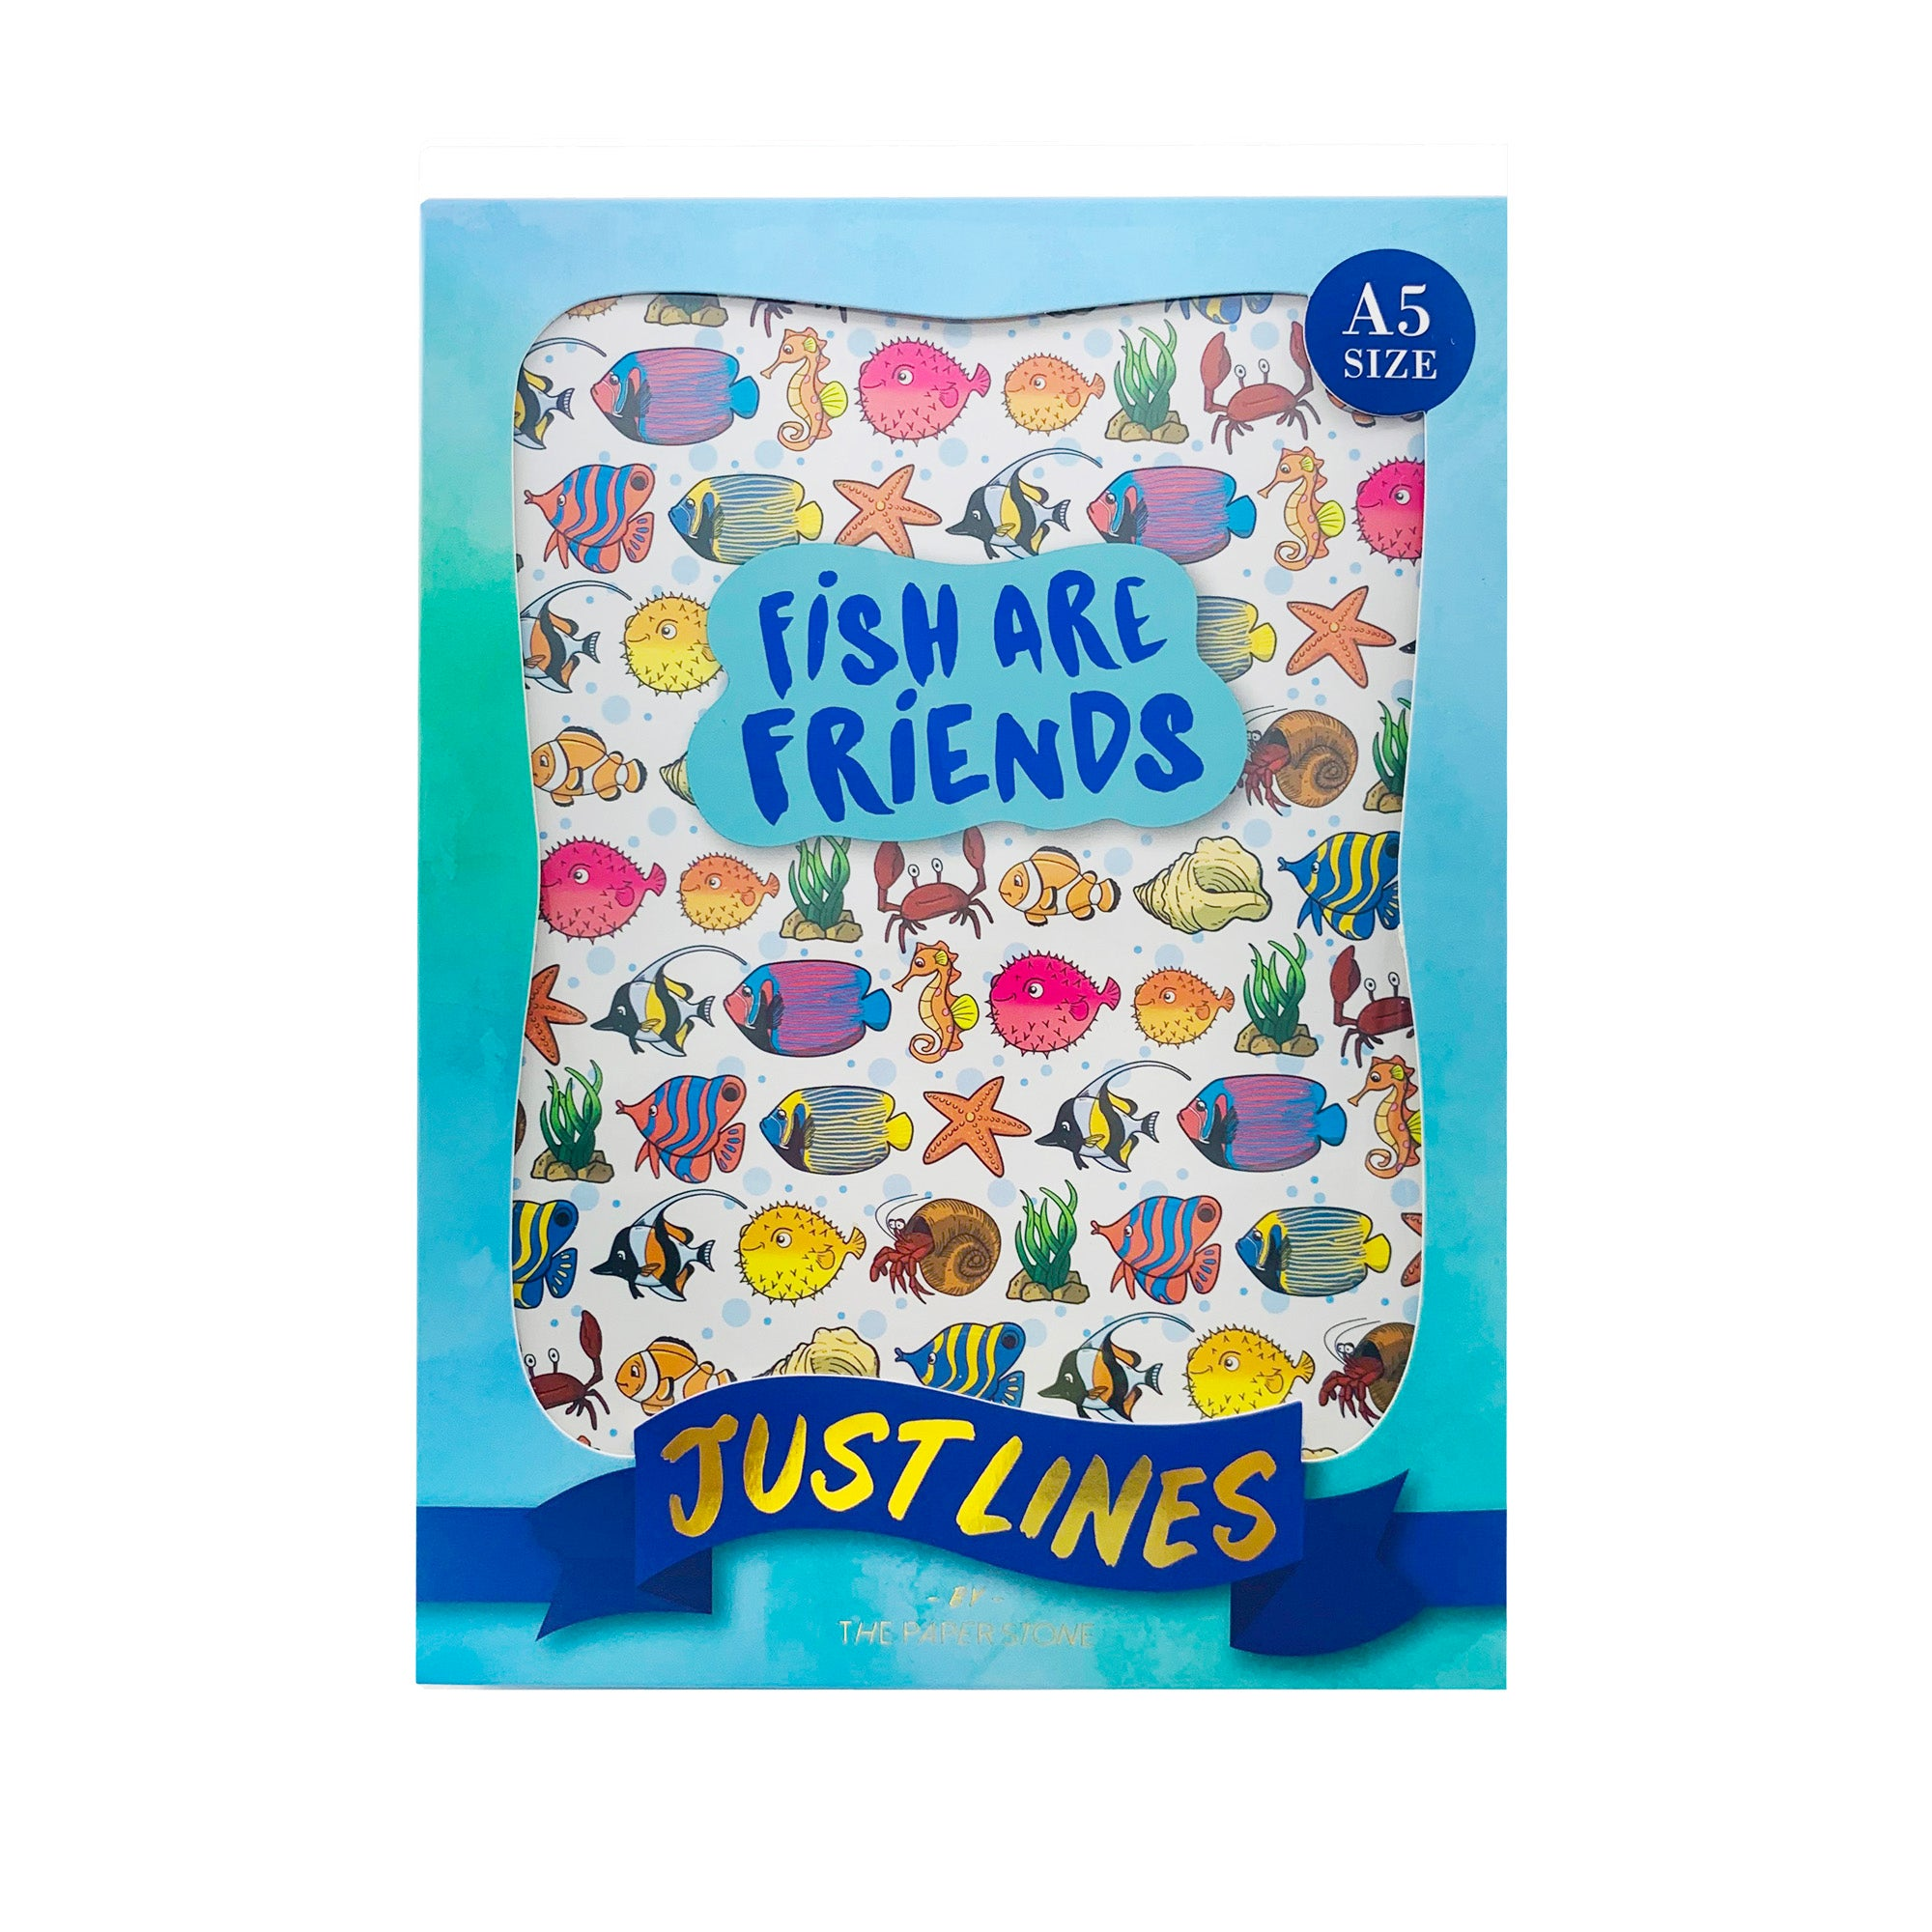 Just Lines - Fish are Friends